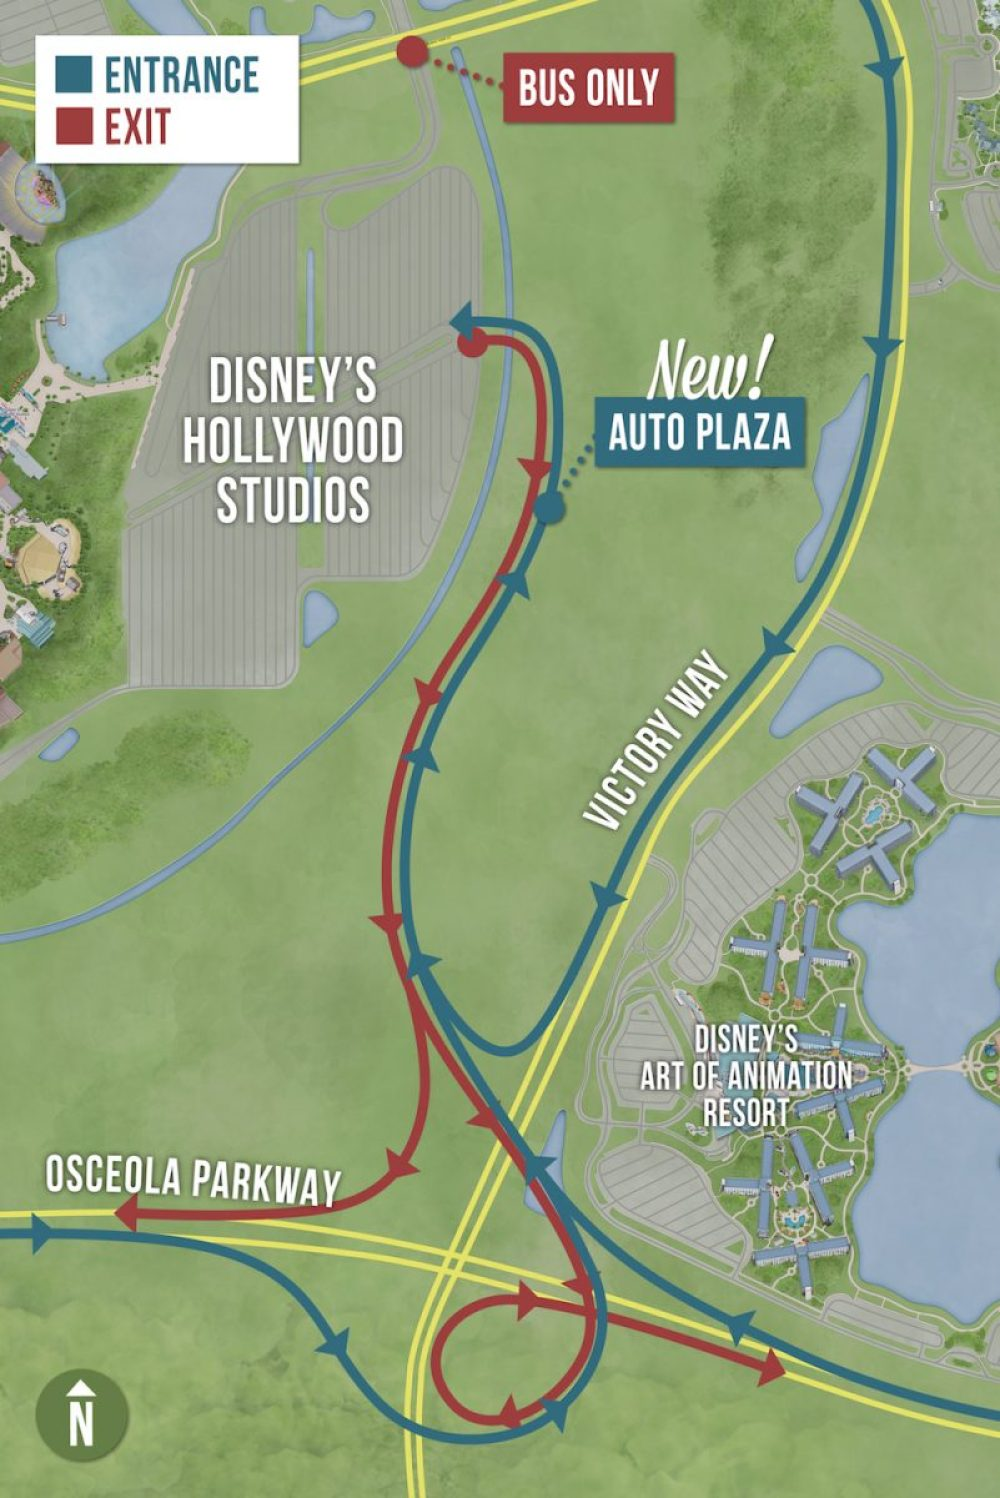 hollywood studios new auto plaza